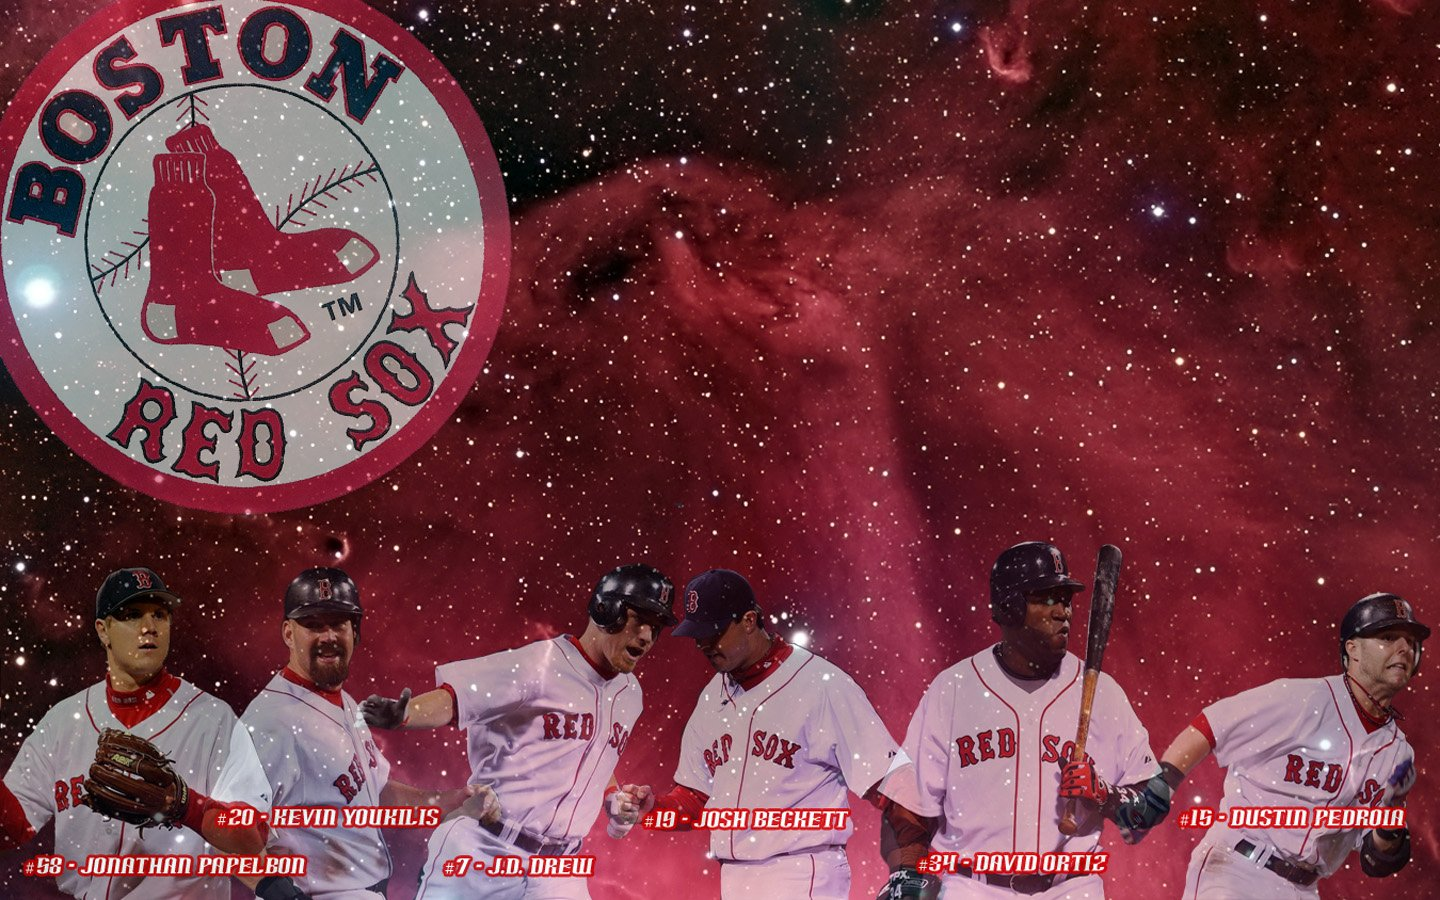 Free Download Nice Boston Red Sox Wallpaper Boston Red Sox Wallpapers 1440x900 For Your Desktop Mobile Tablet Explore 48 Red Sox Free Wallpaper Cool Red Wallpaper Red Background Wallpaper